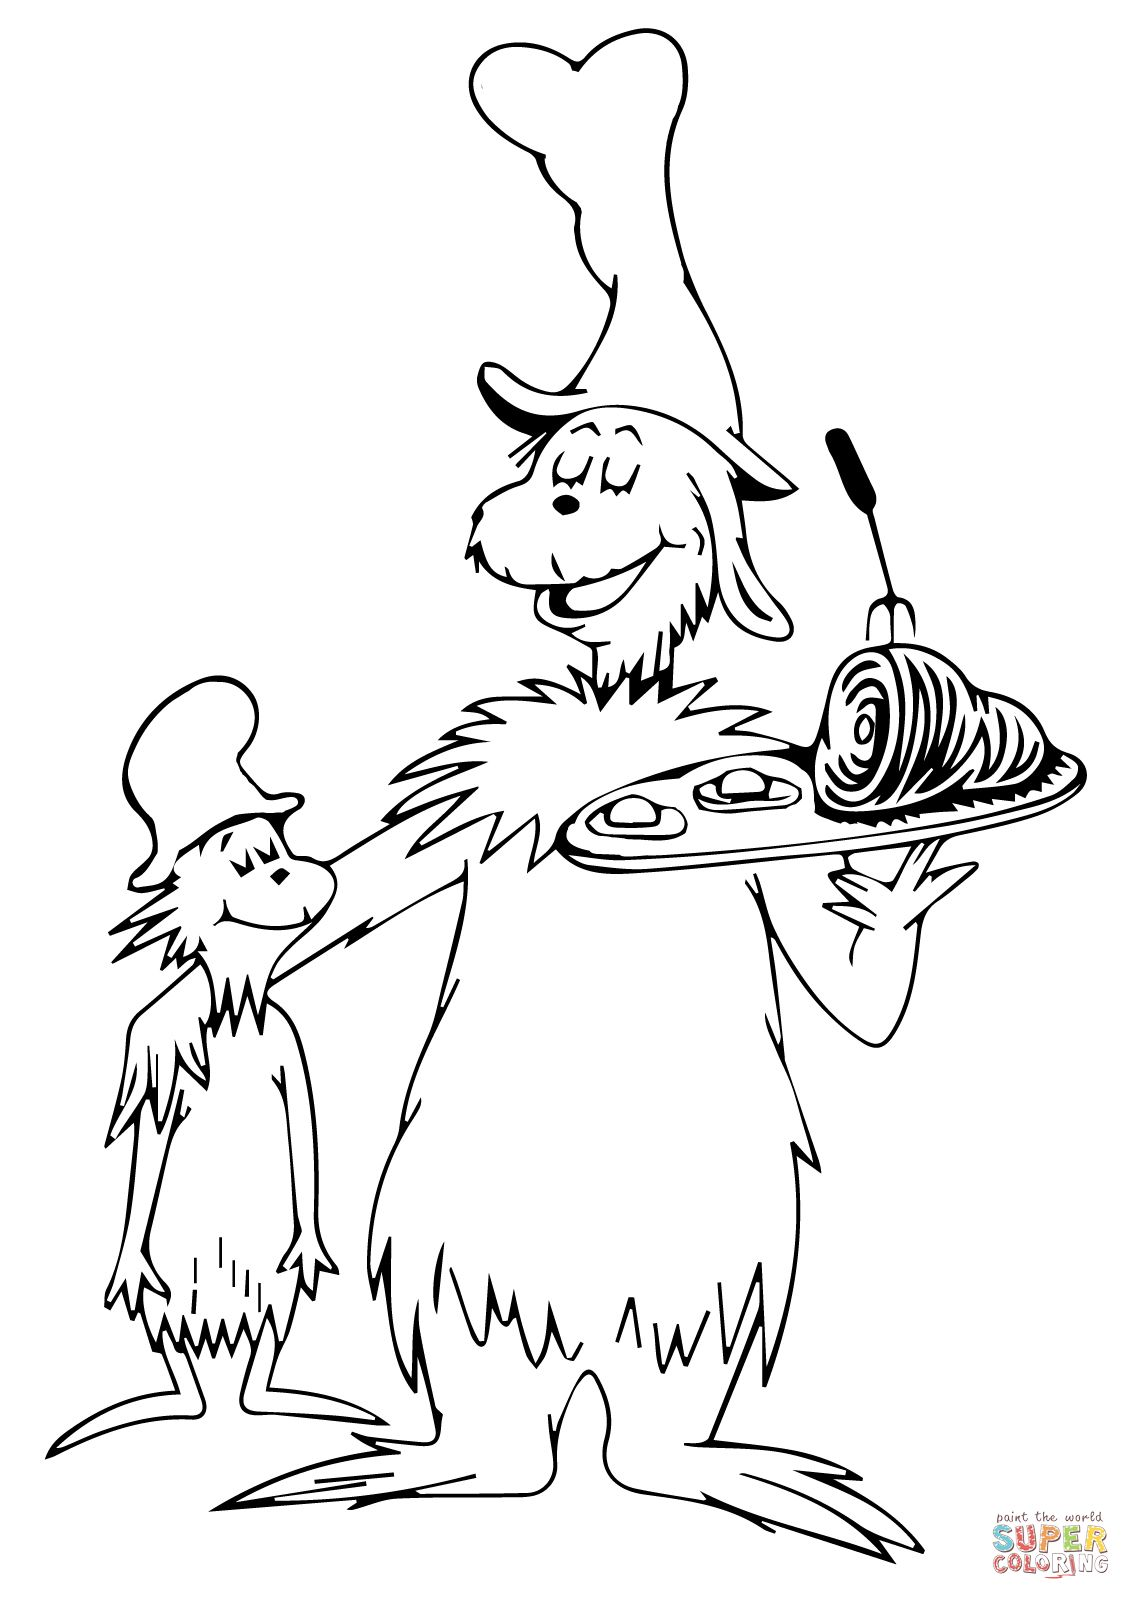 green eggs and ham coloring sheets i like green eggs and ham coloring page free printable coloring ham eggs sheets green and